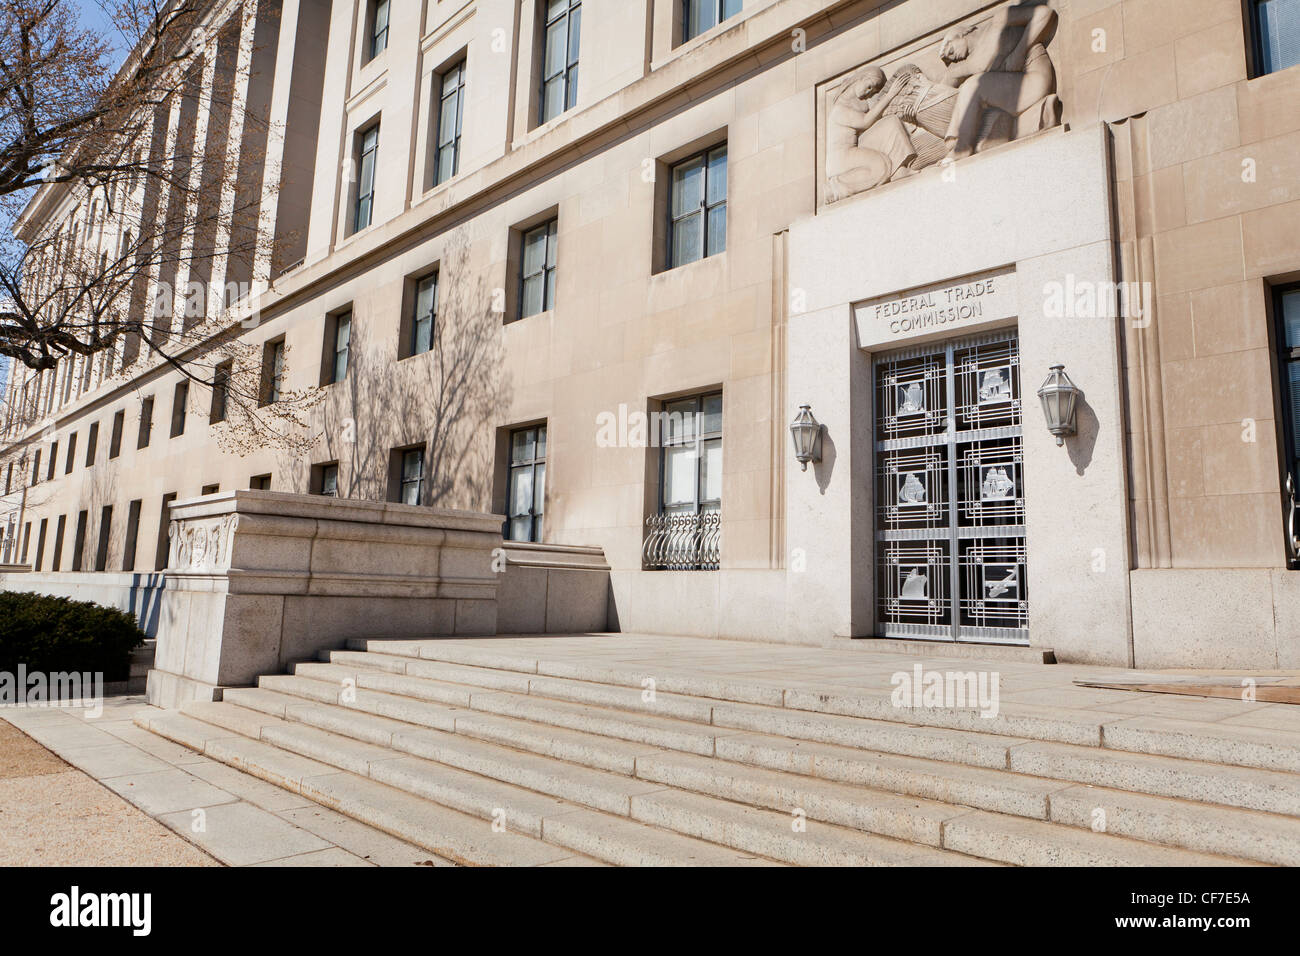 Federal Trade Commission building - Stock Image